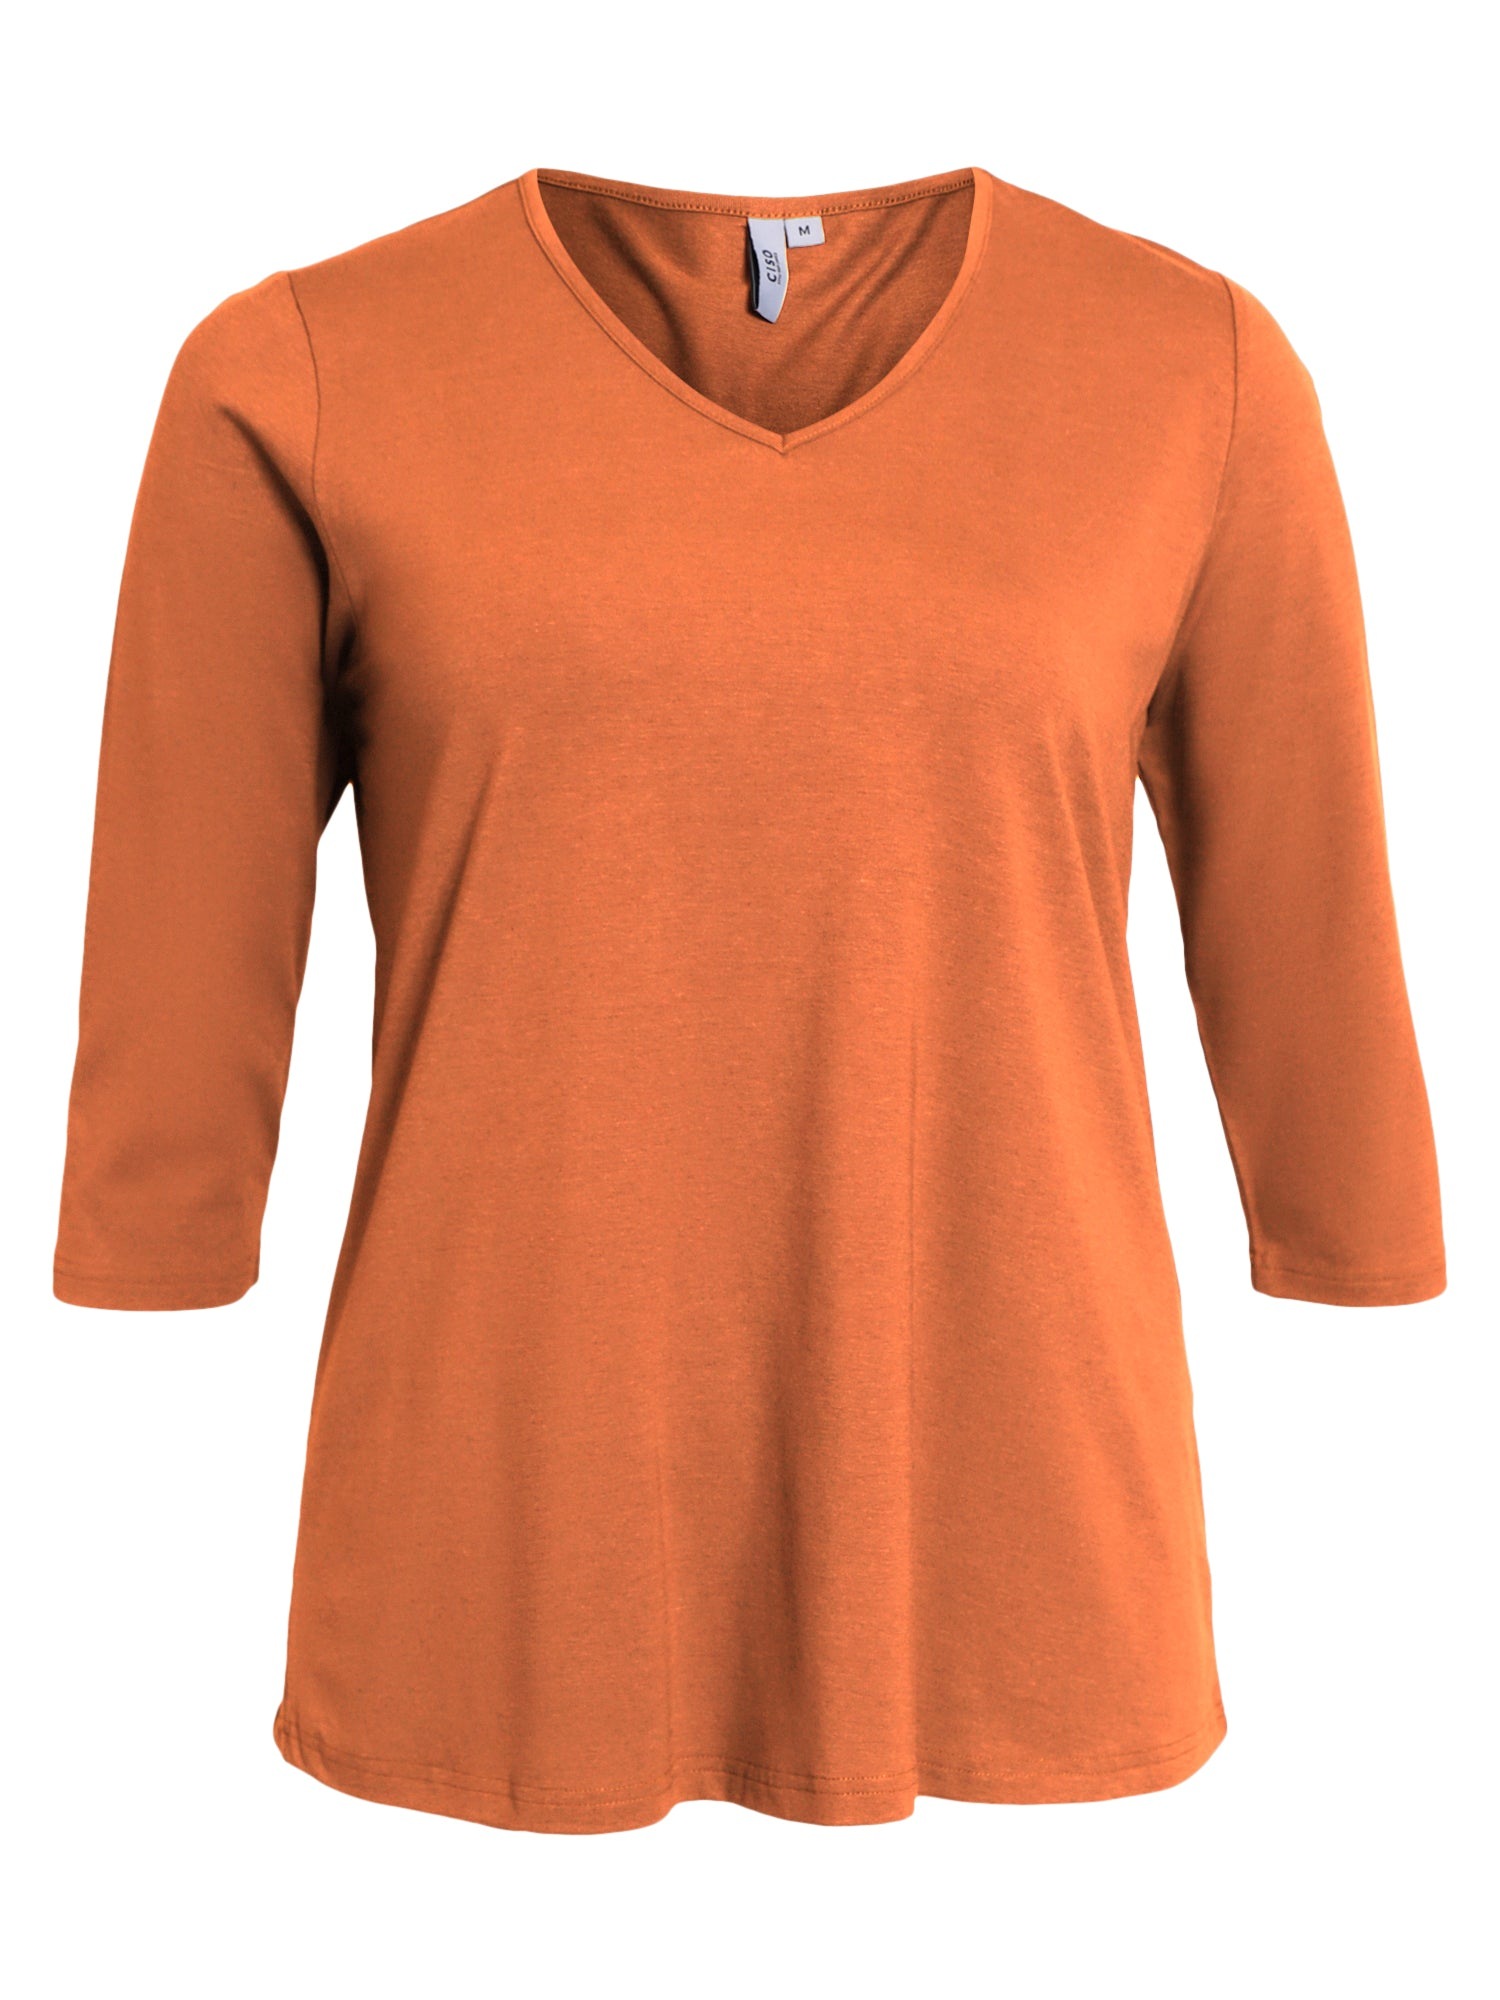 Image of   Basis T-shirt i A-facon med 3/4 ærmer - Jaffa orange